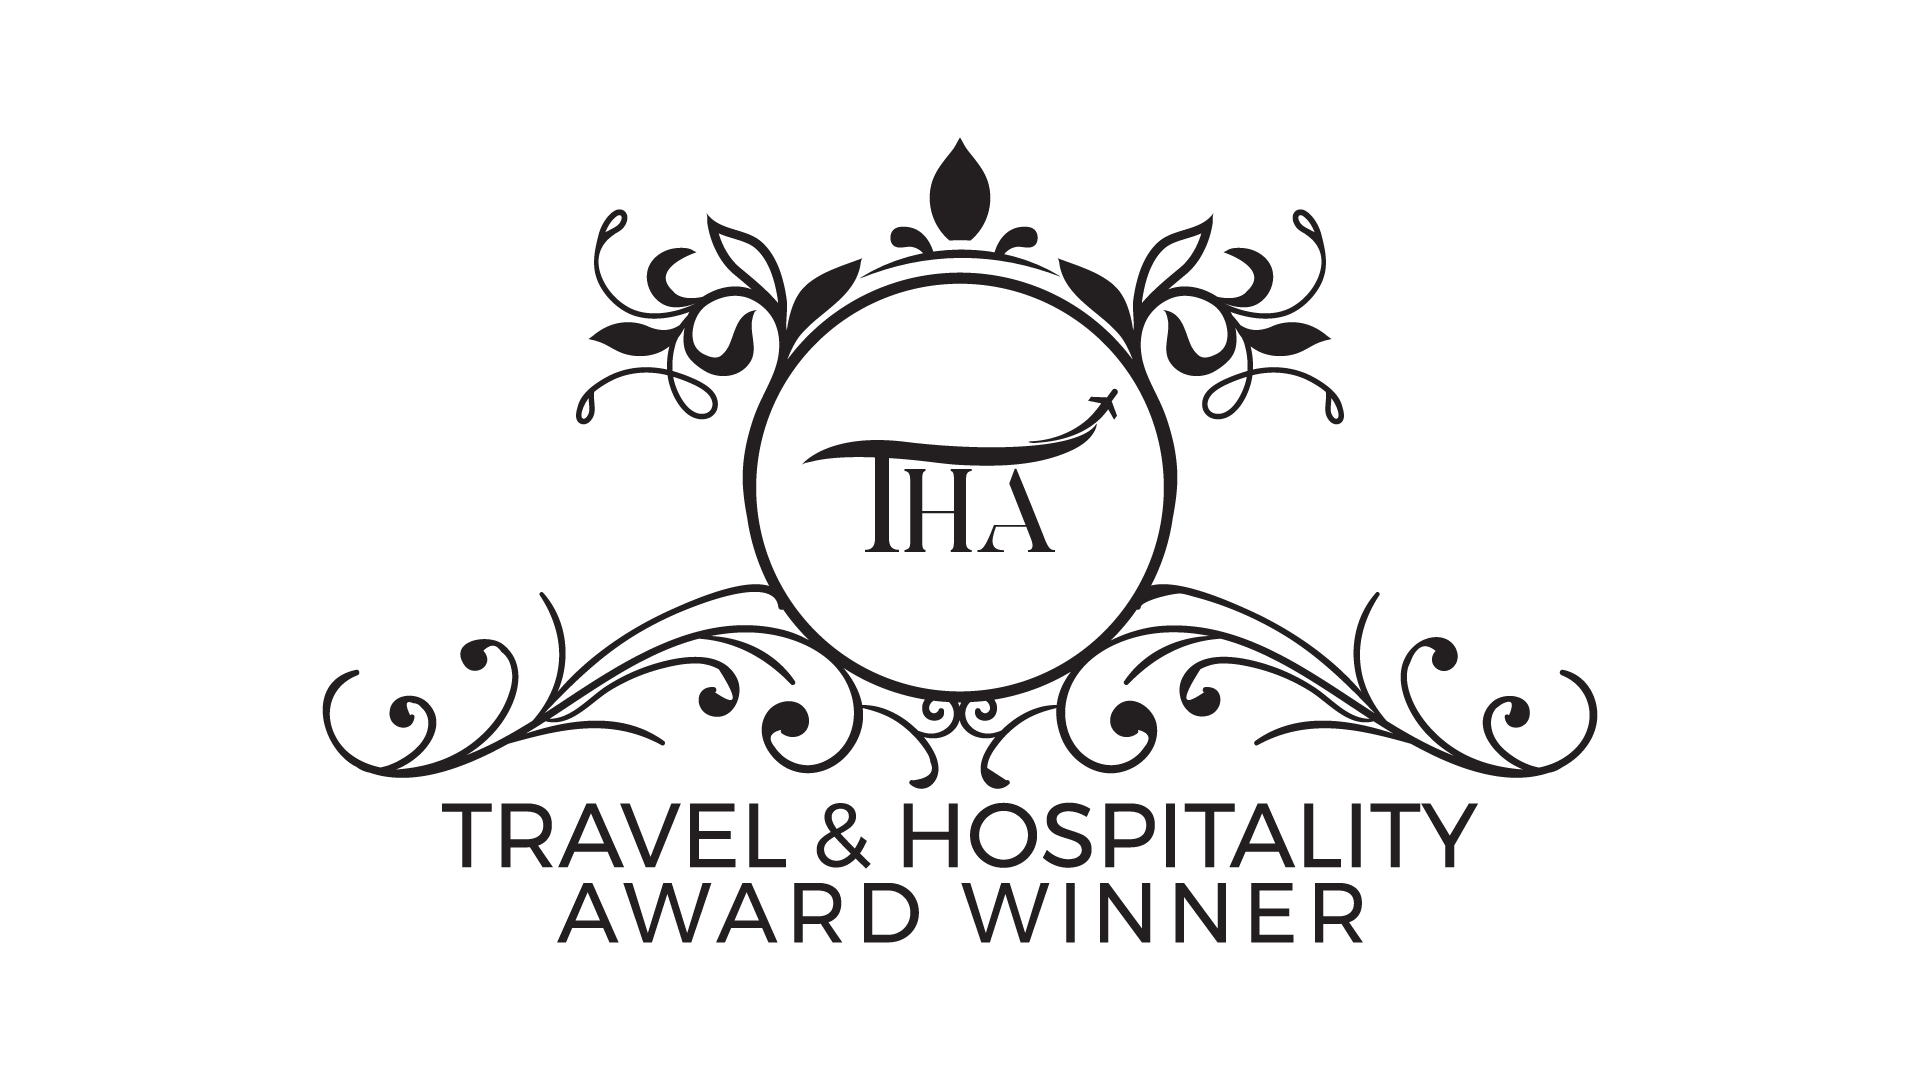 Travel and Hospitality Awards - Tour Company of The Year 2018 Winner. - Fair Isle Tours are proud to announce that we are named Tour Company of The Year for 2018 by the Travel and Hospitality awards. We would like to thank everyone for making this possible and here is too another great year in 2019!Happy Christmas to everyone and a wonderful New Year!